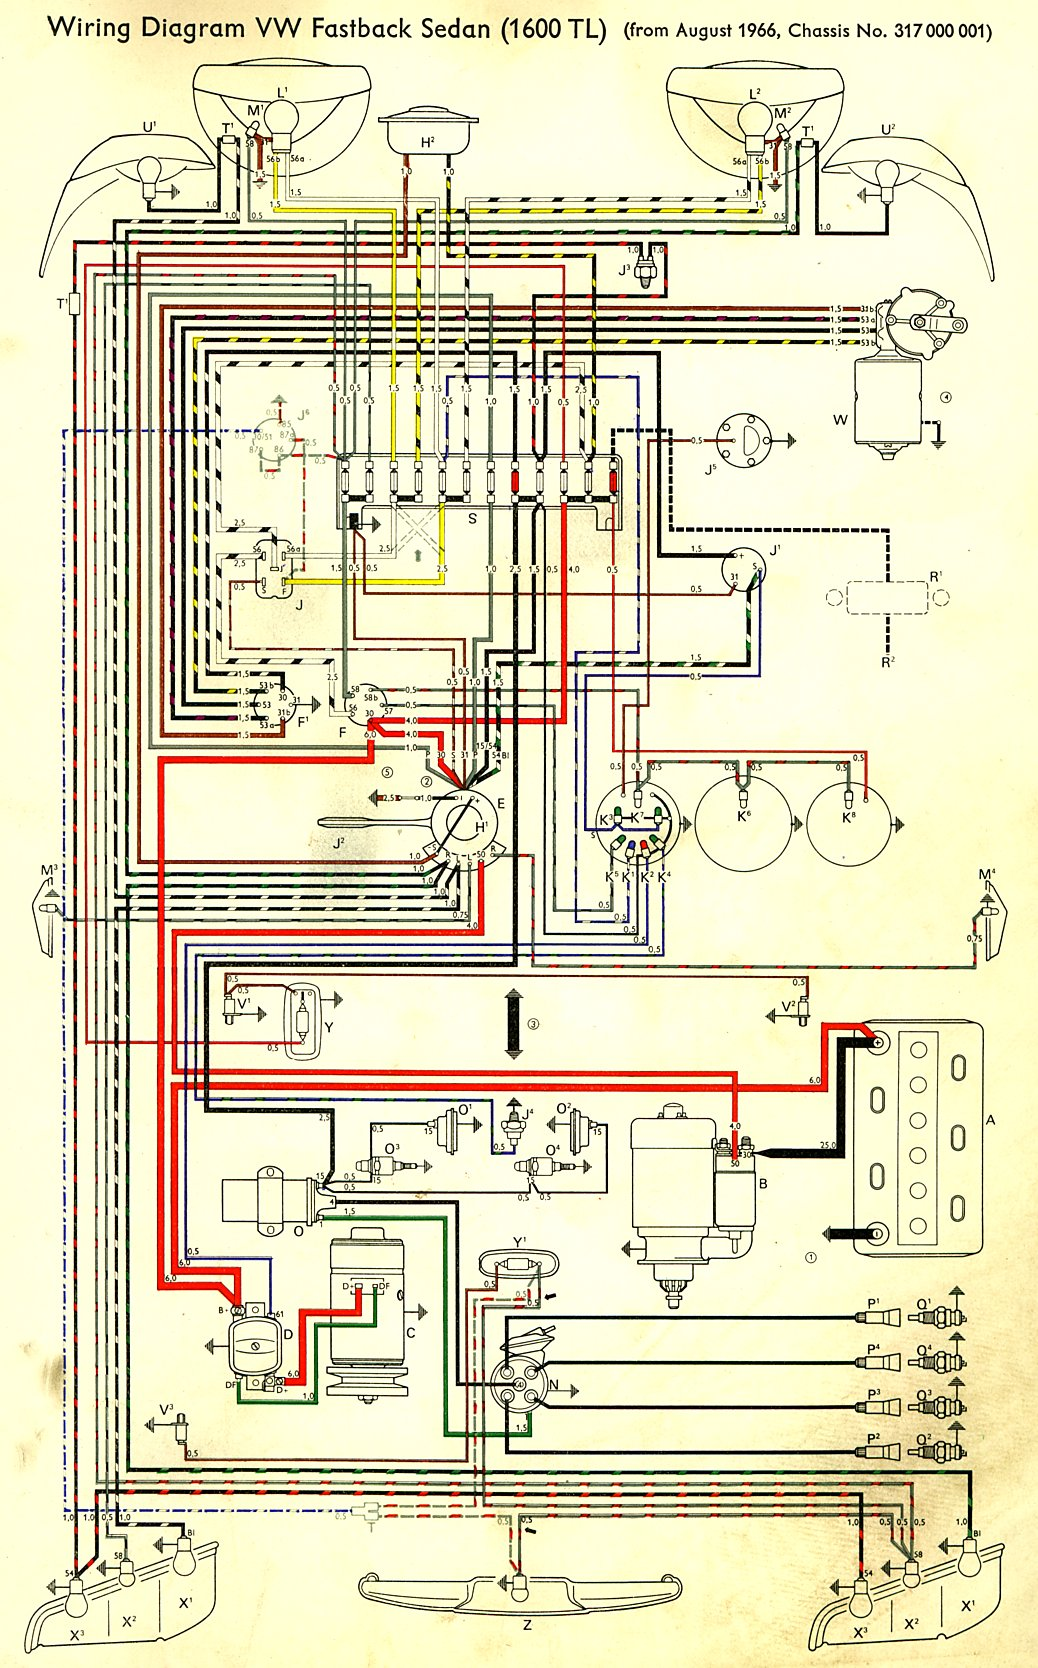 Type 3 Wiring Diagrams House Electrical Further Australia Light Switch